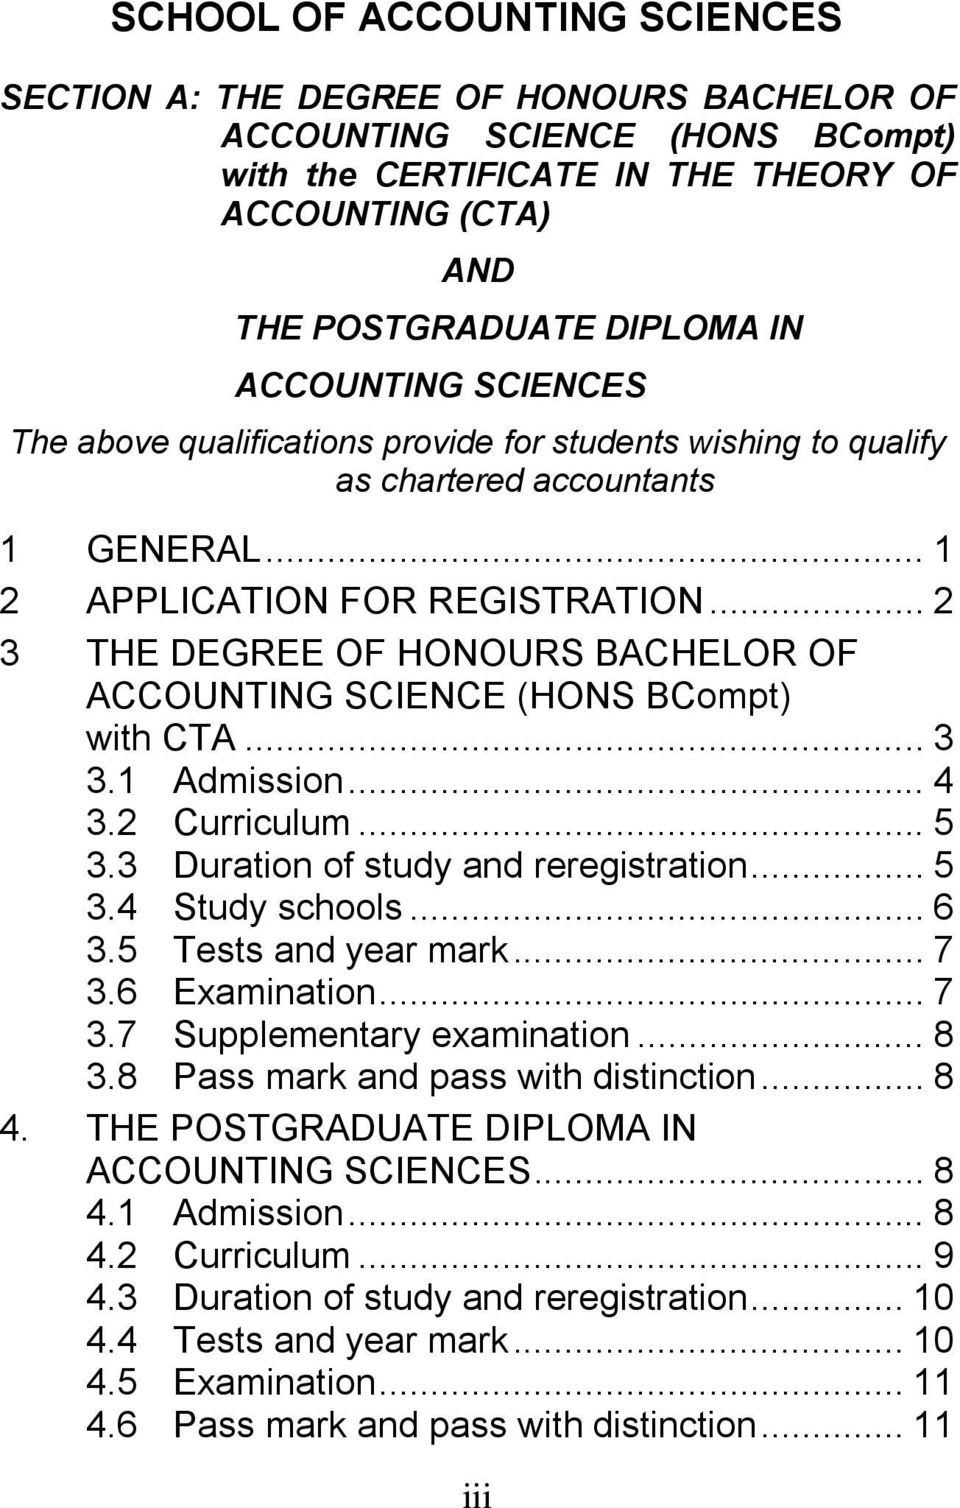 .. 2 3 THE DEGREE OF HONOURS BACHELOR OF ACCOUNTING SCIENCE (HONS BCompt) with CTA... 3 3.1 Admission... 4 3.2 Curriculum... 5 3.3 Duration of study and reregistration... 5 3.4 Study schools... 6 3.